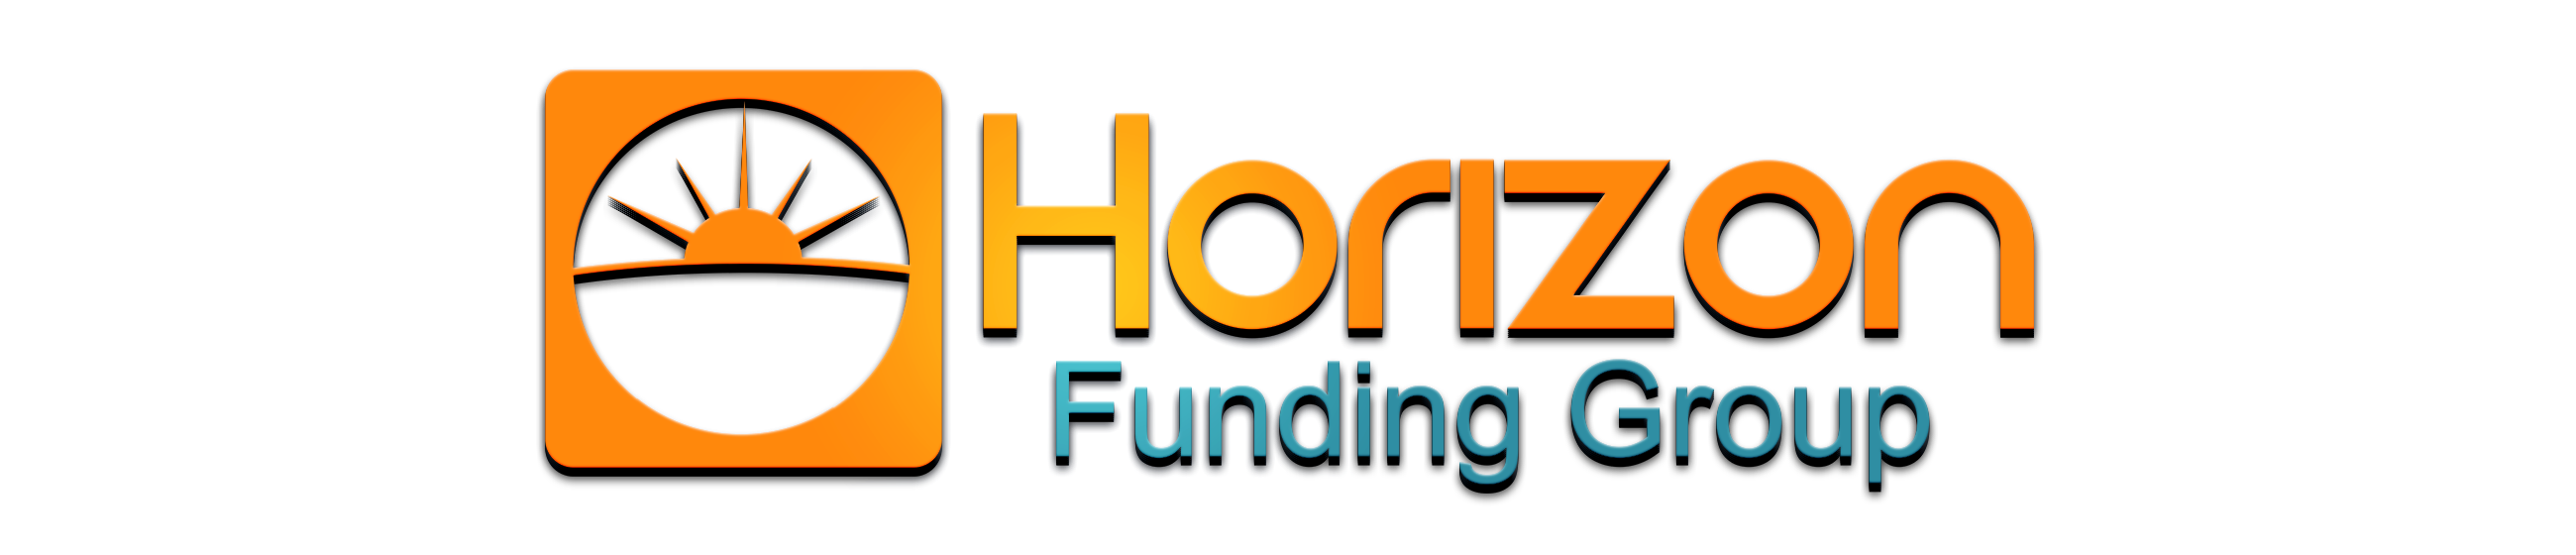 Horizon Funding Group